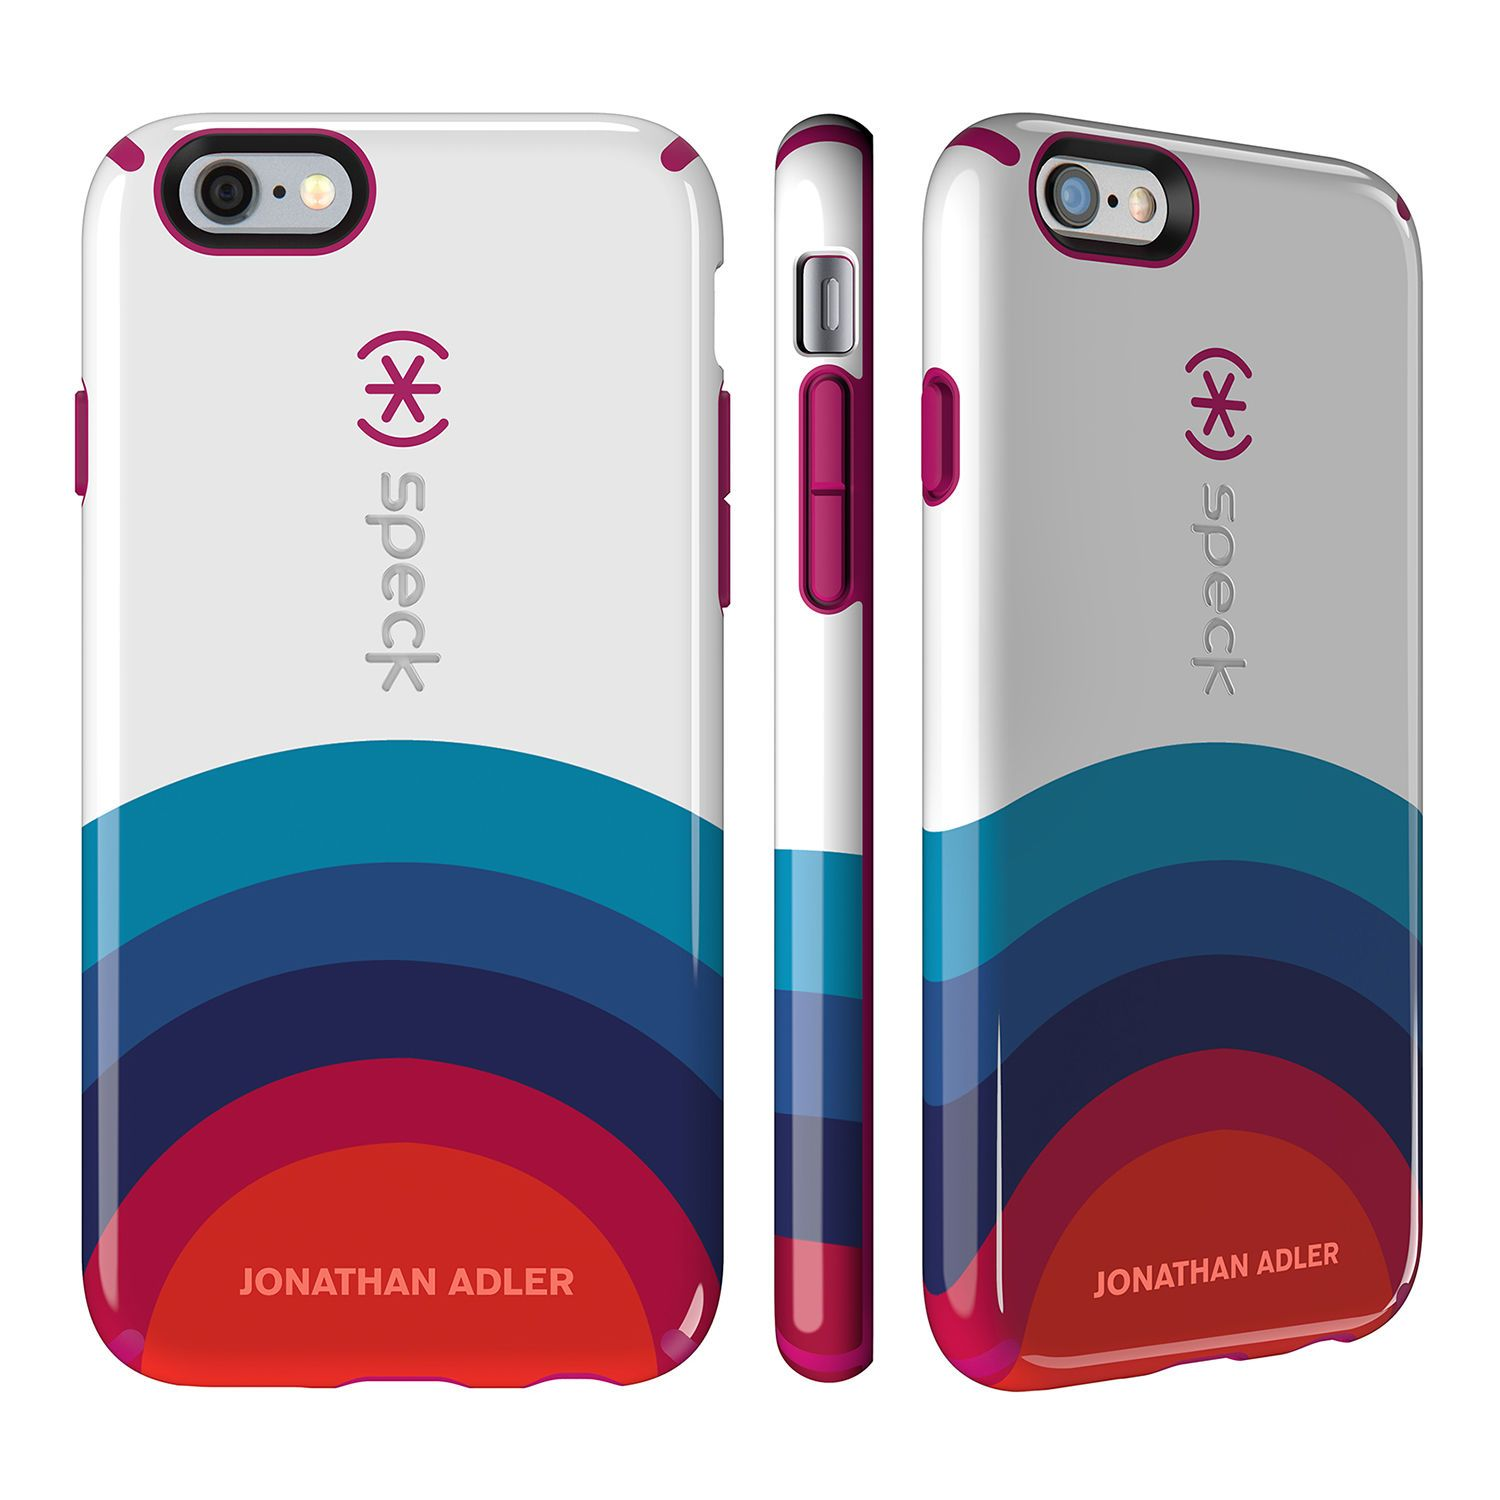 CandyShell Inked Jonathan Adler iPhone 6s Plus & iPhone 6 Plus Cases